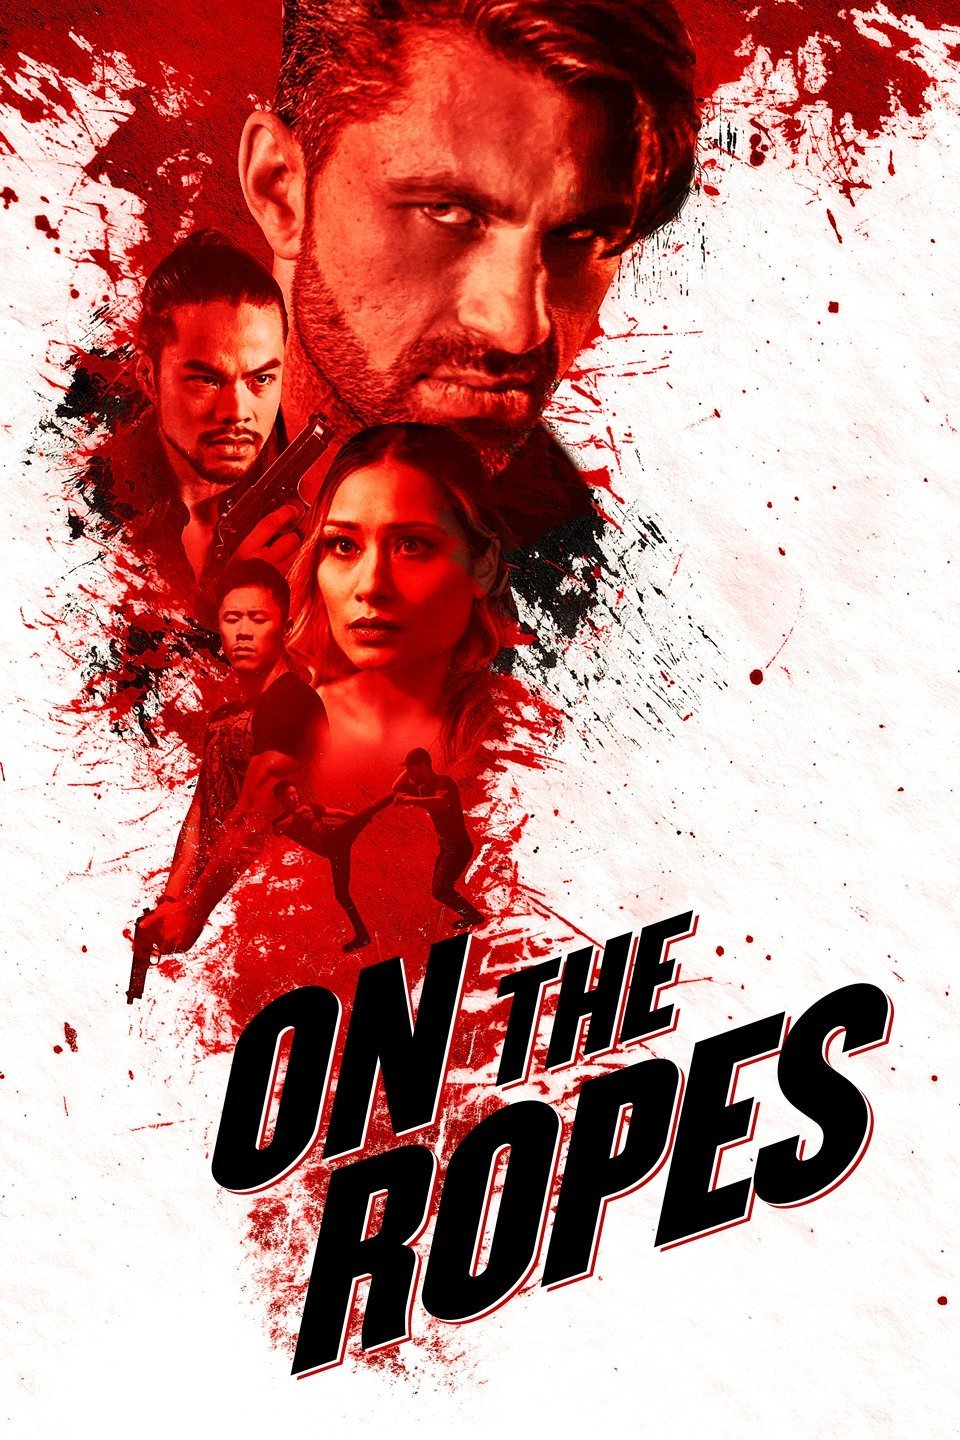 ON THE ROPES: KILL ORDER Director James Mark is Back with the New Action Film Now On DVD!